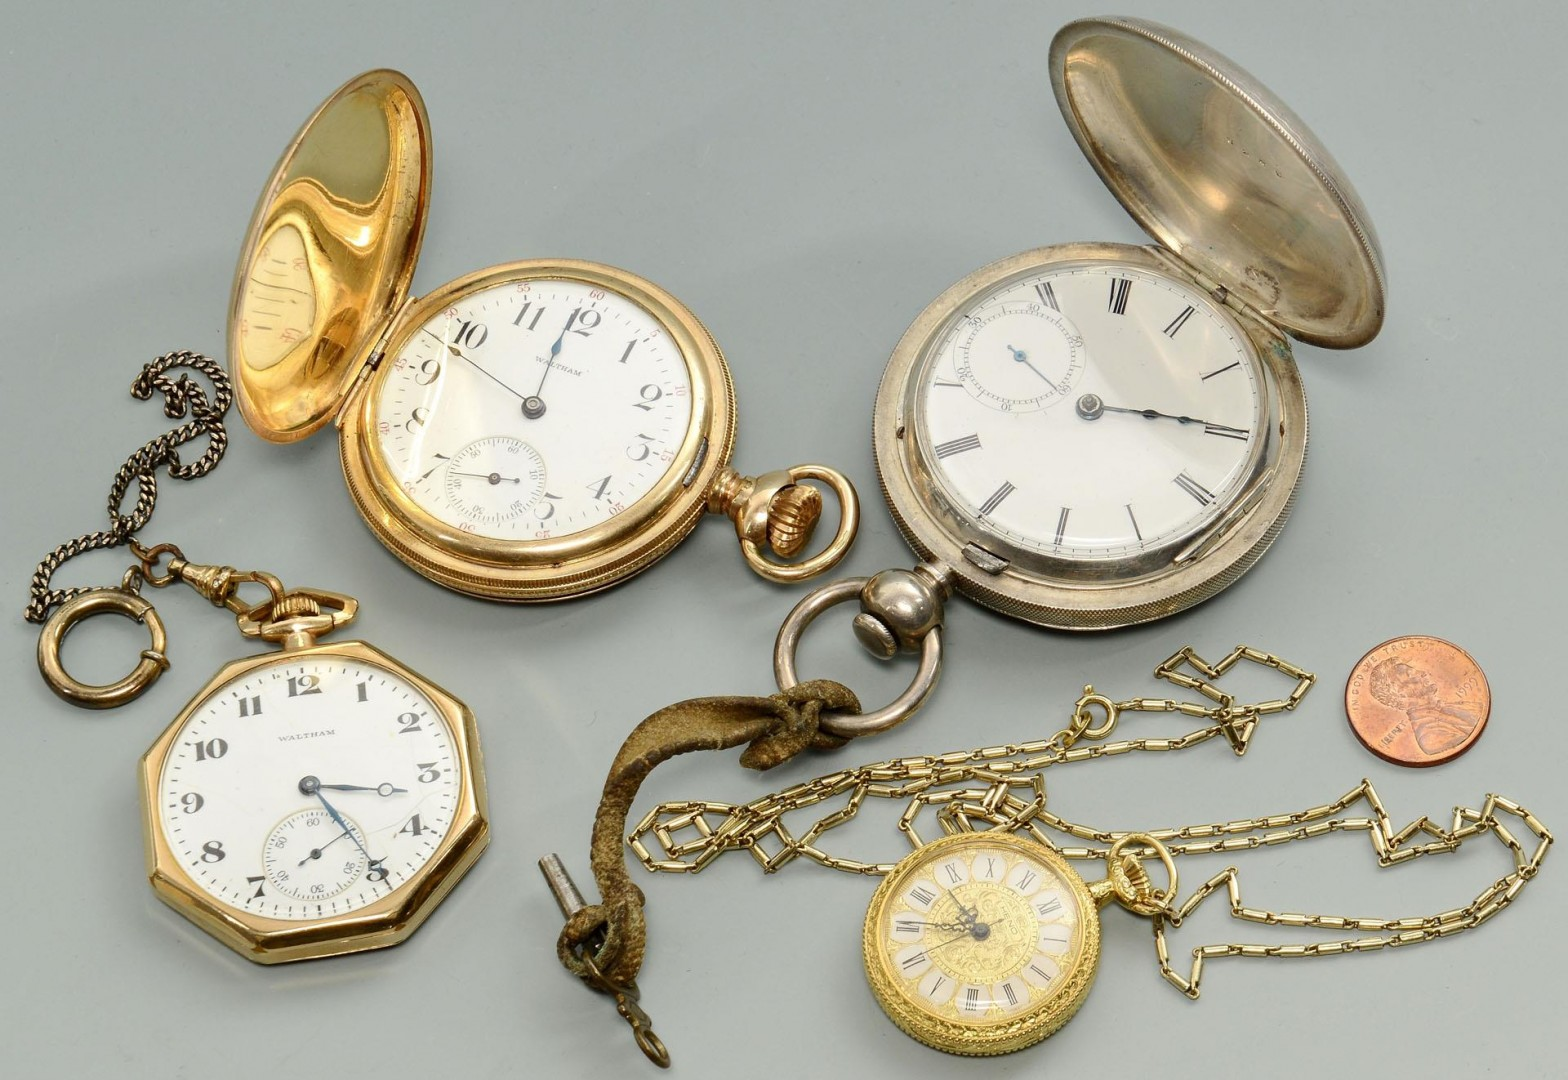 Lot 712: Group of 4 pocket watches